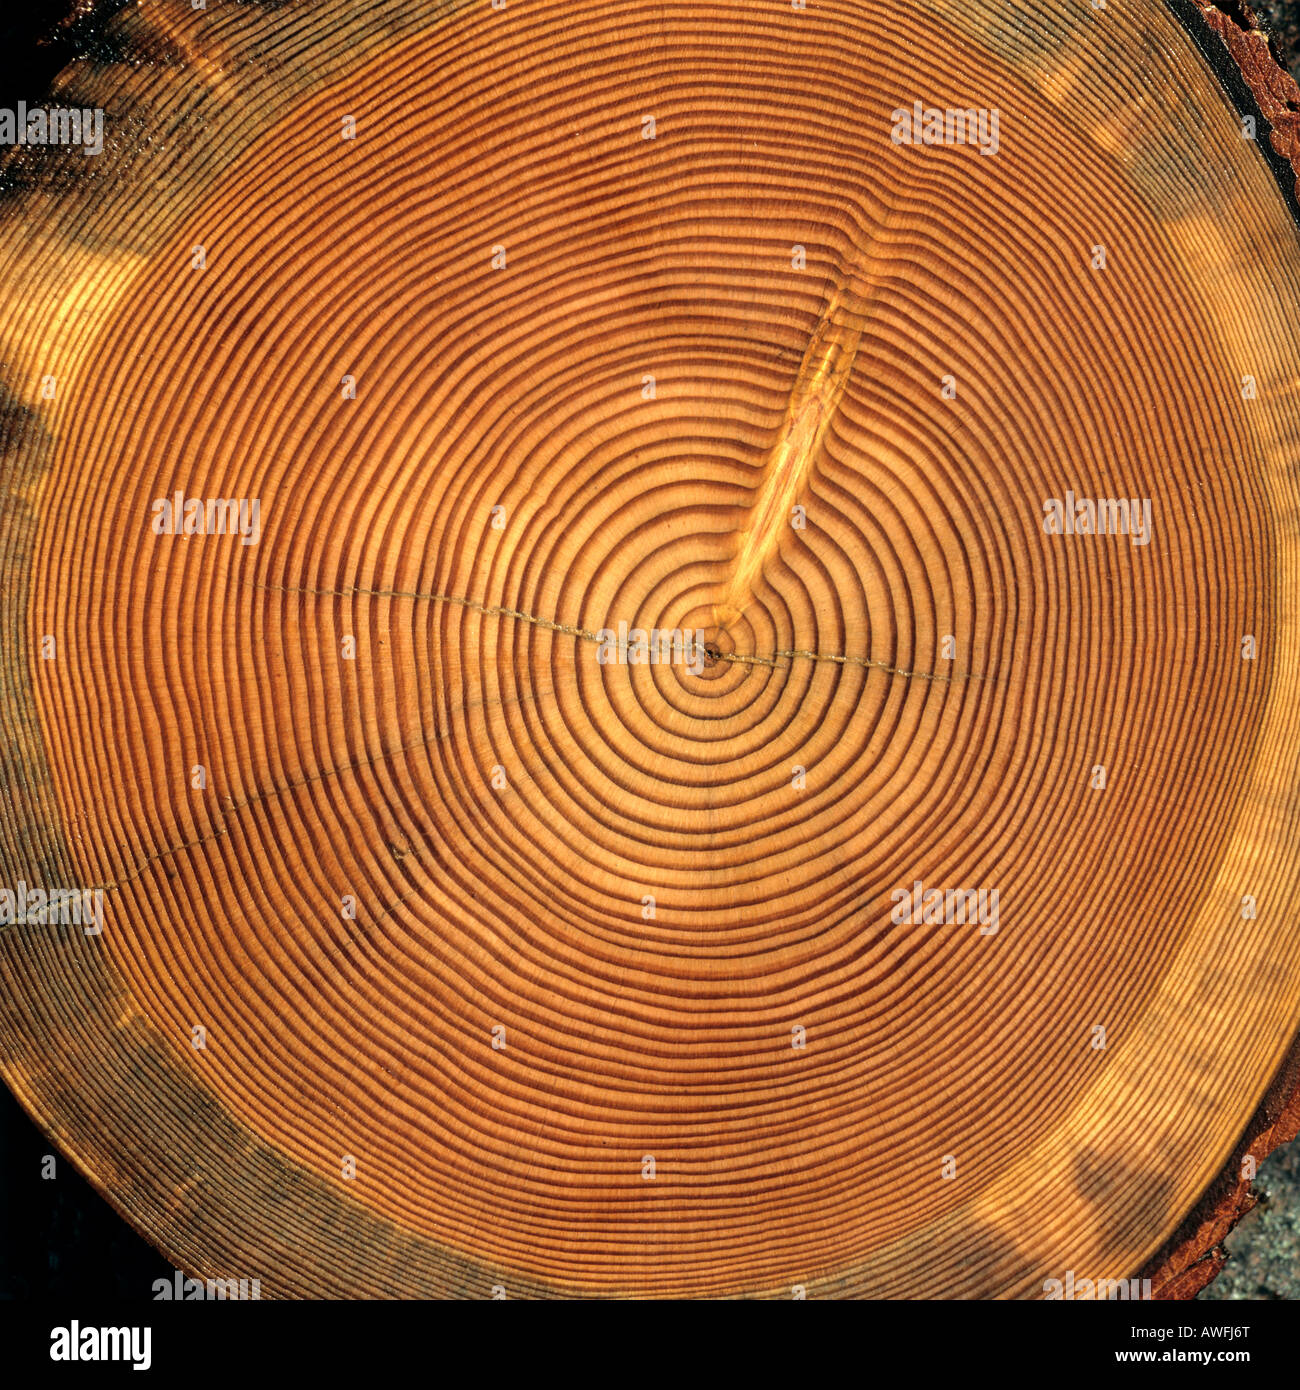 Tree trunk cross-section: tree rings - Stock Image